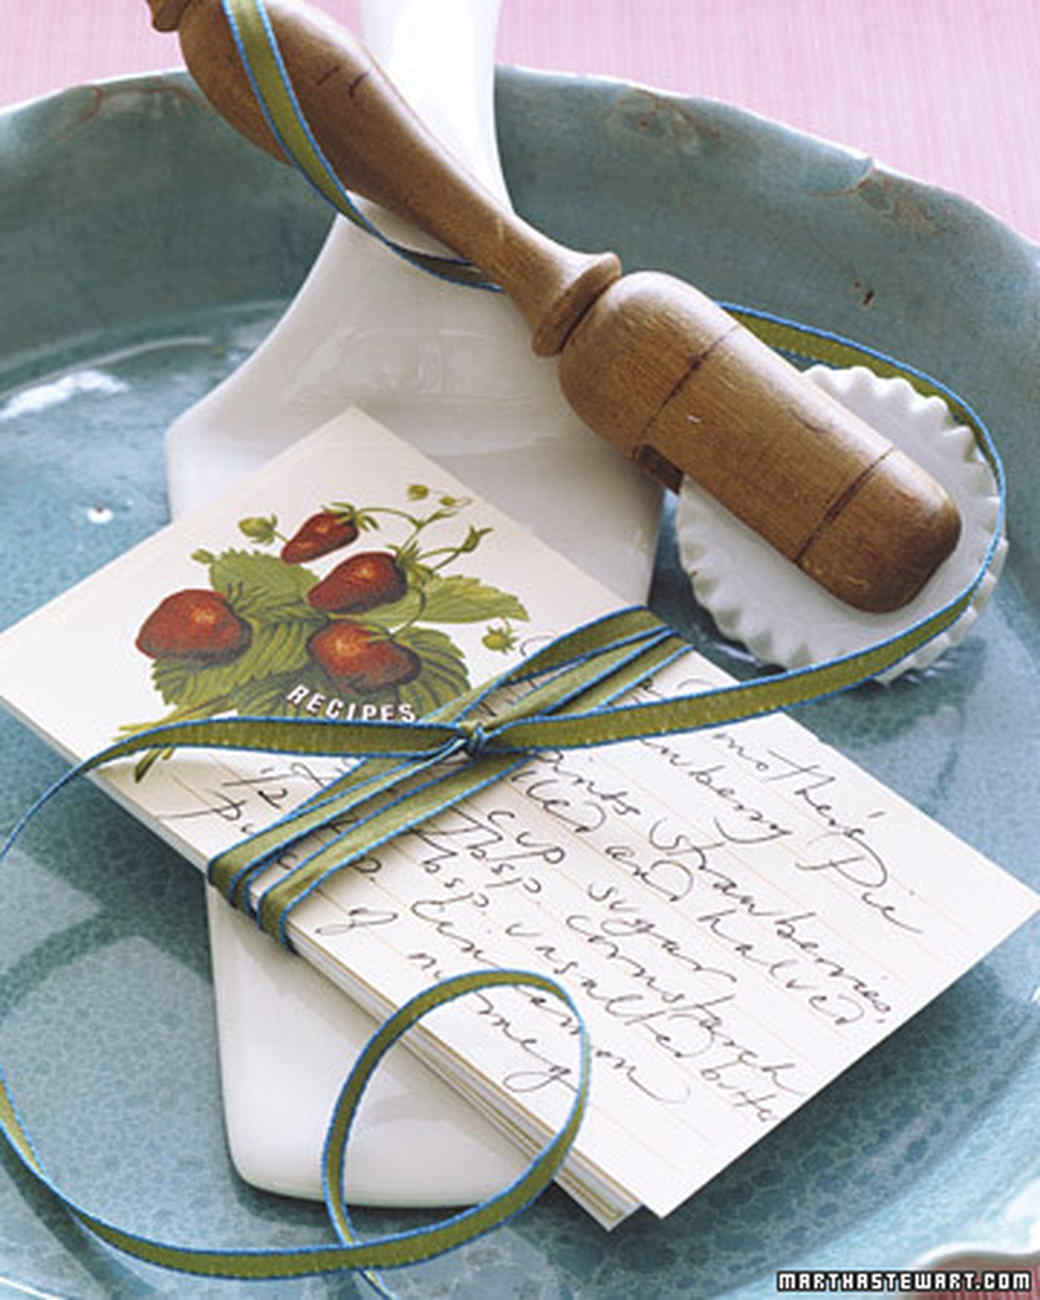 Keepsake Recipe Cards